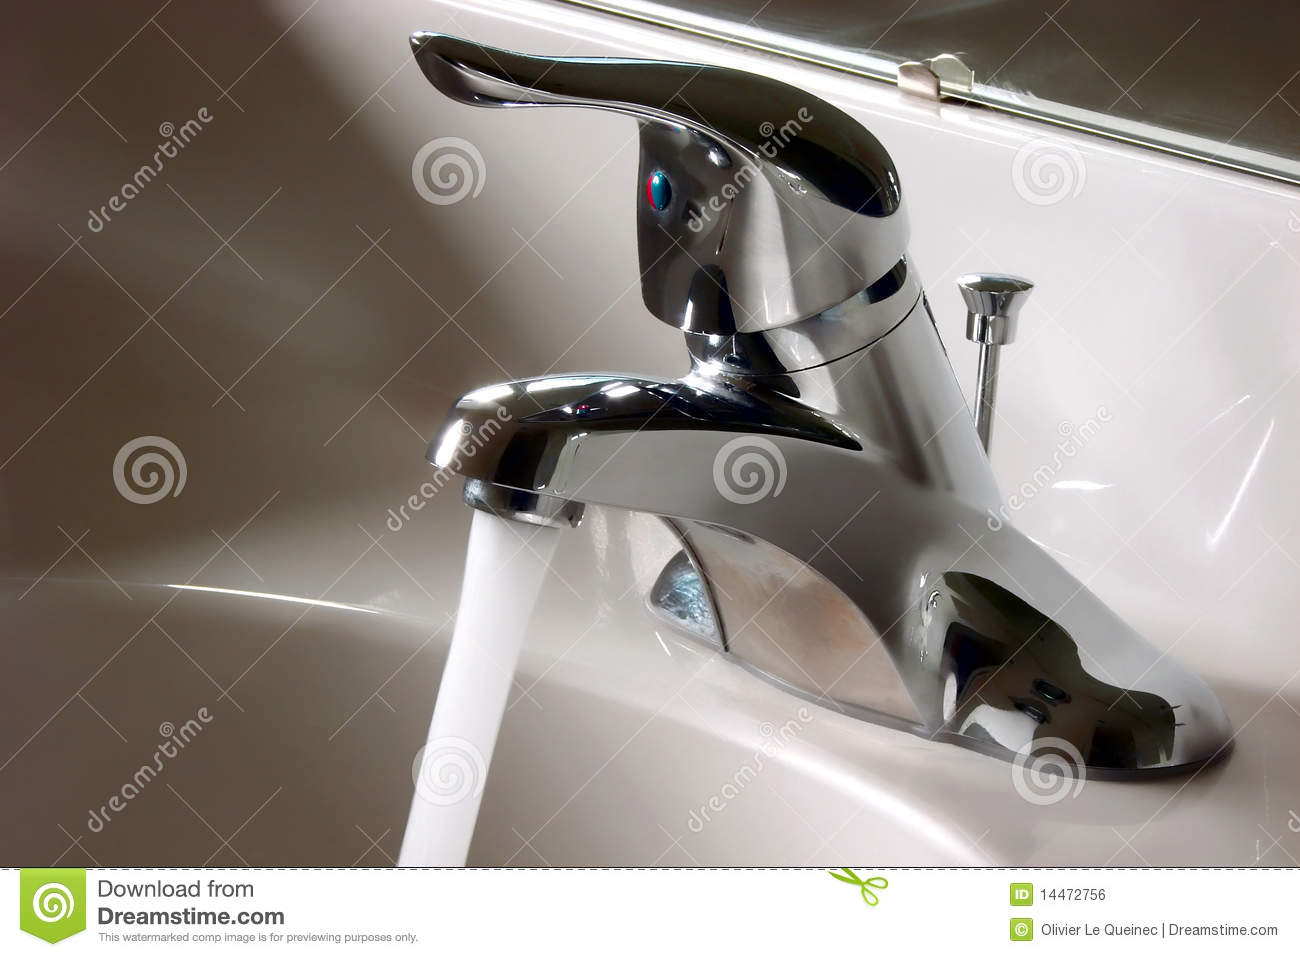 Bathroom Faucet Open And Running With Water Flow Stock Photo - Image ...